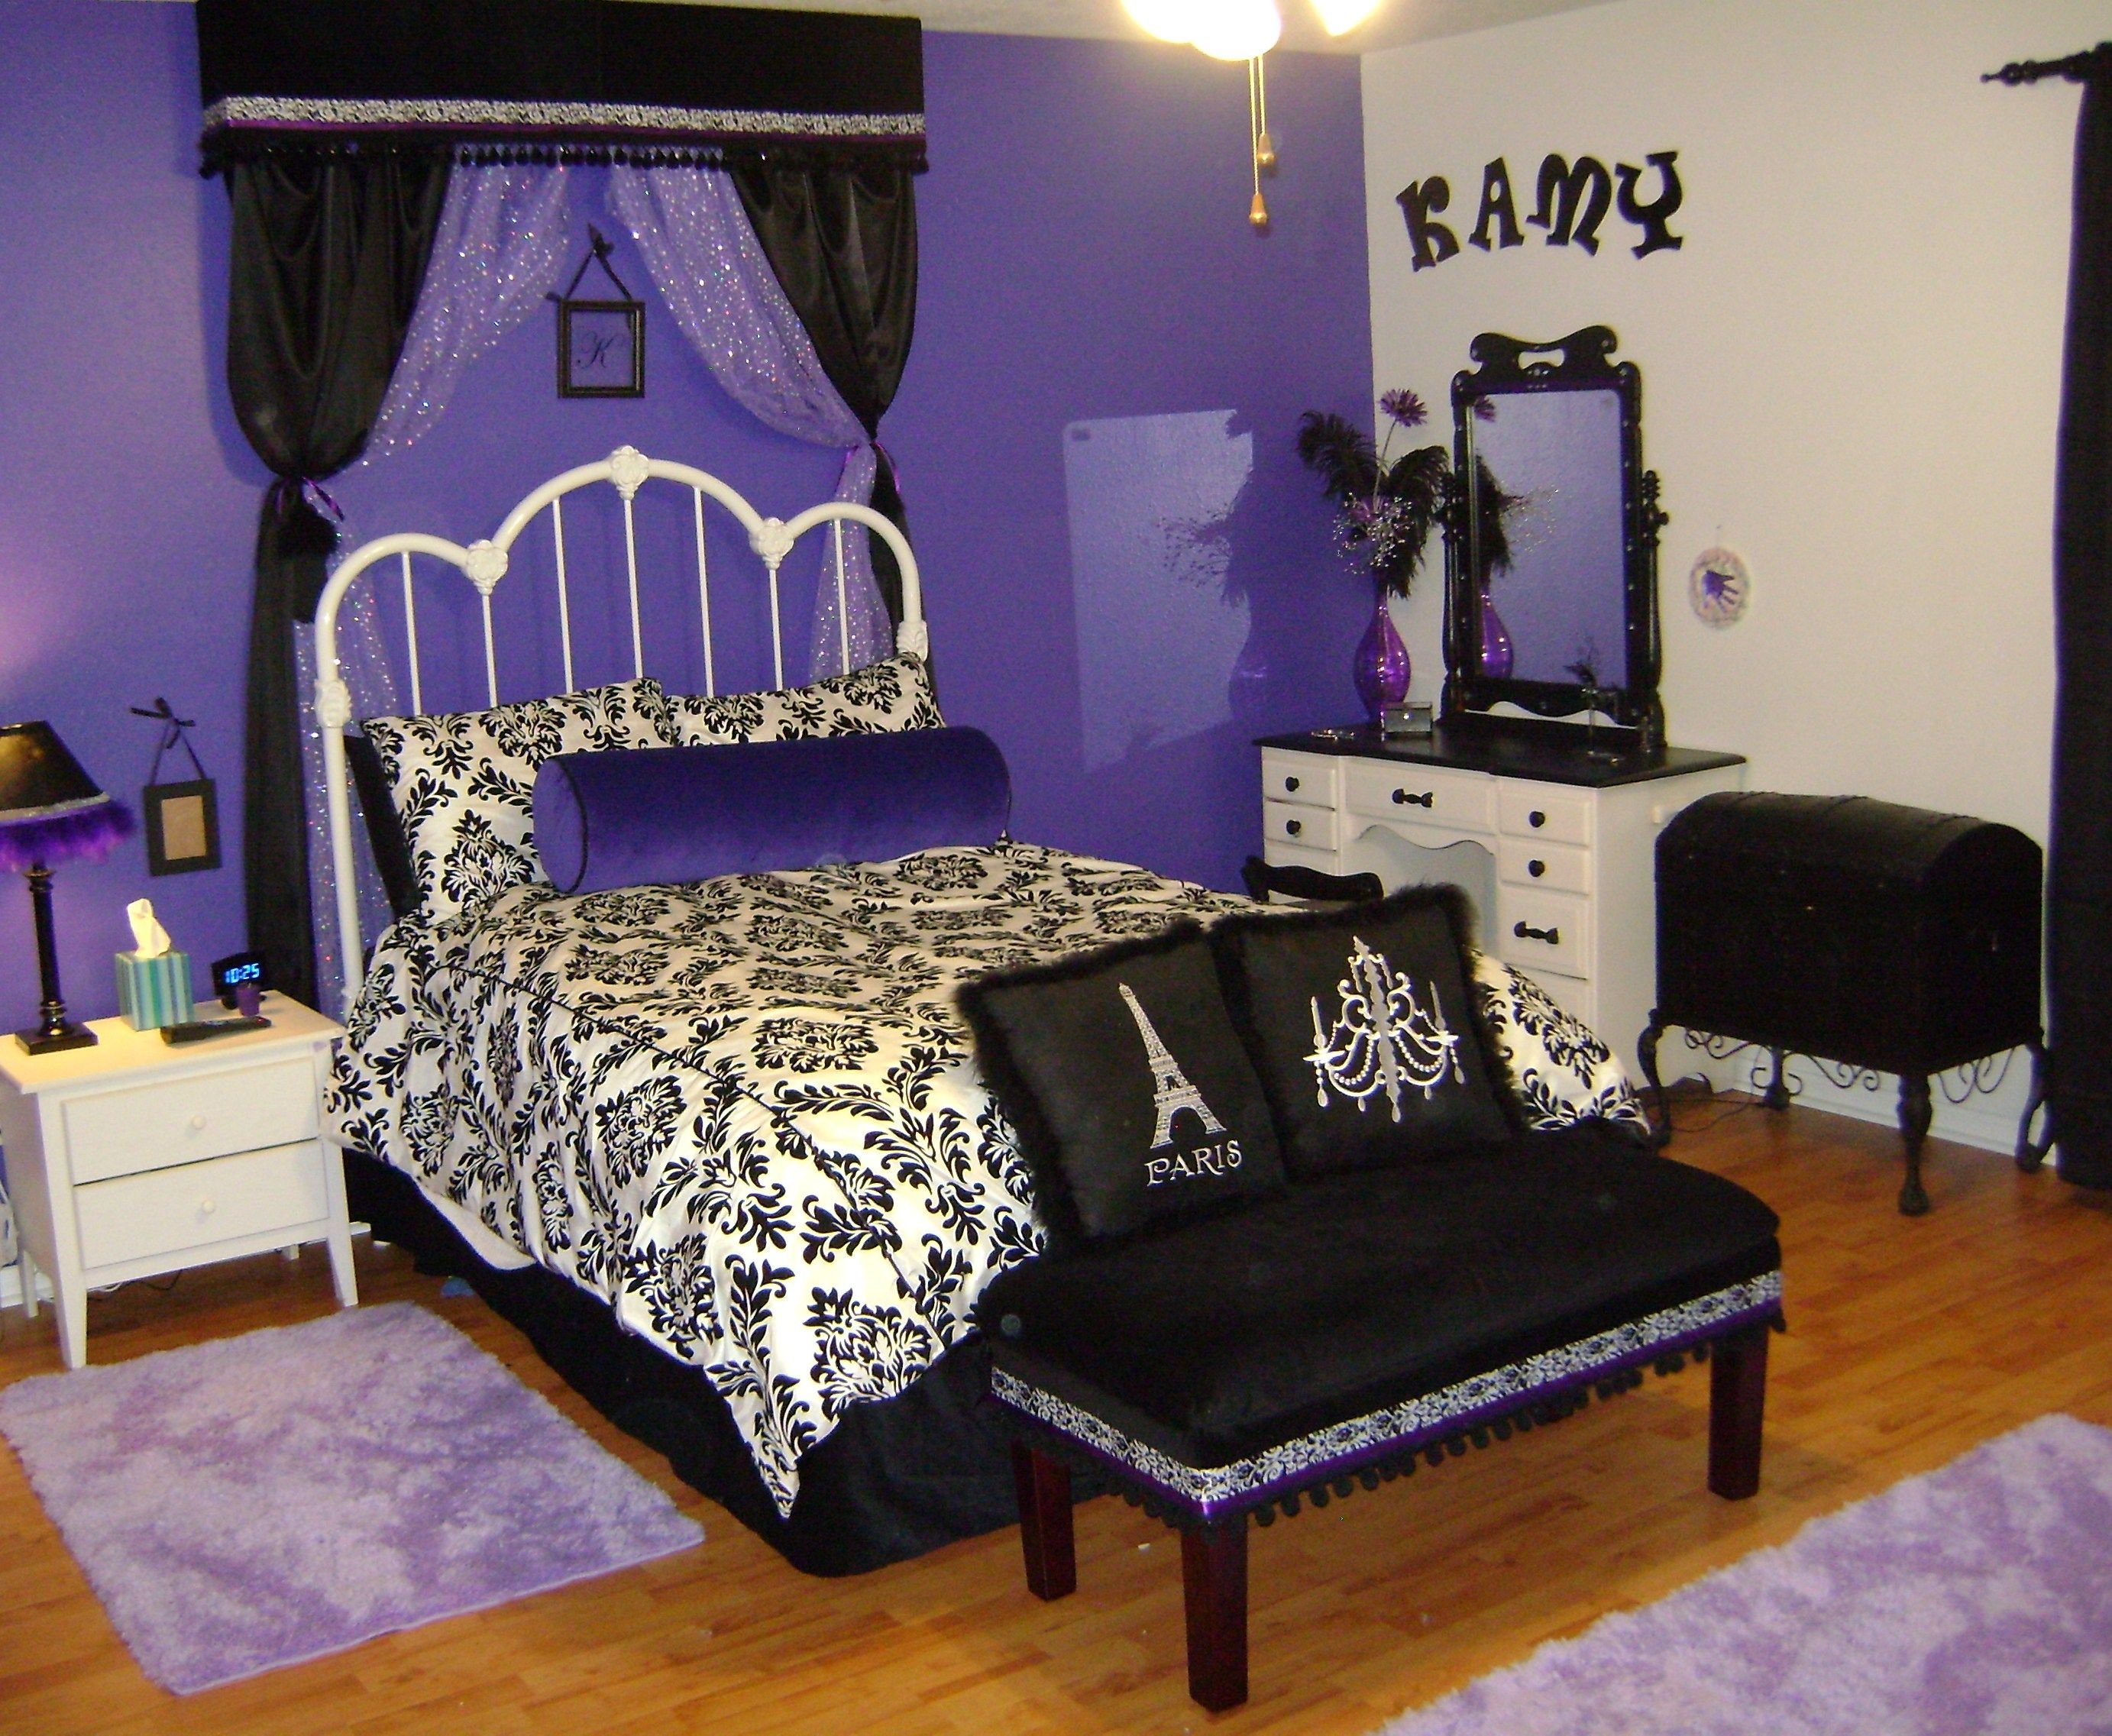 bedroom ideas for teenage girls purple. Bedroom Ideas Exciting Teenage Decozt Interior Design Modern Home Decor Cute Room Girl Painting For Girls Purple L